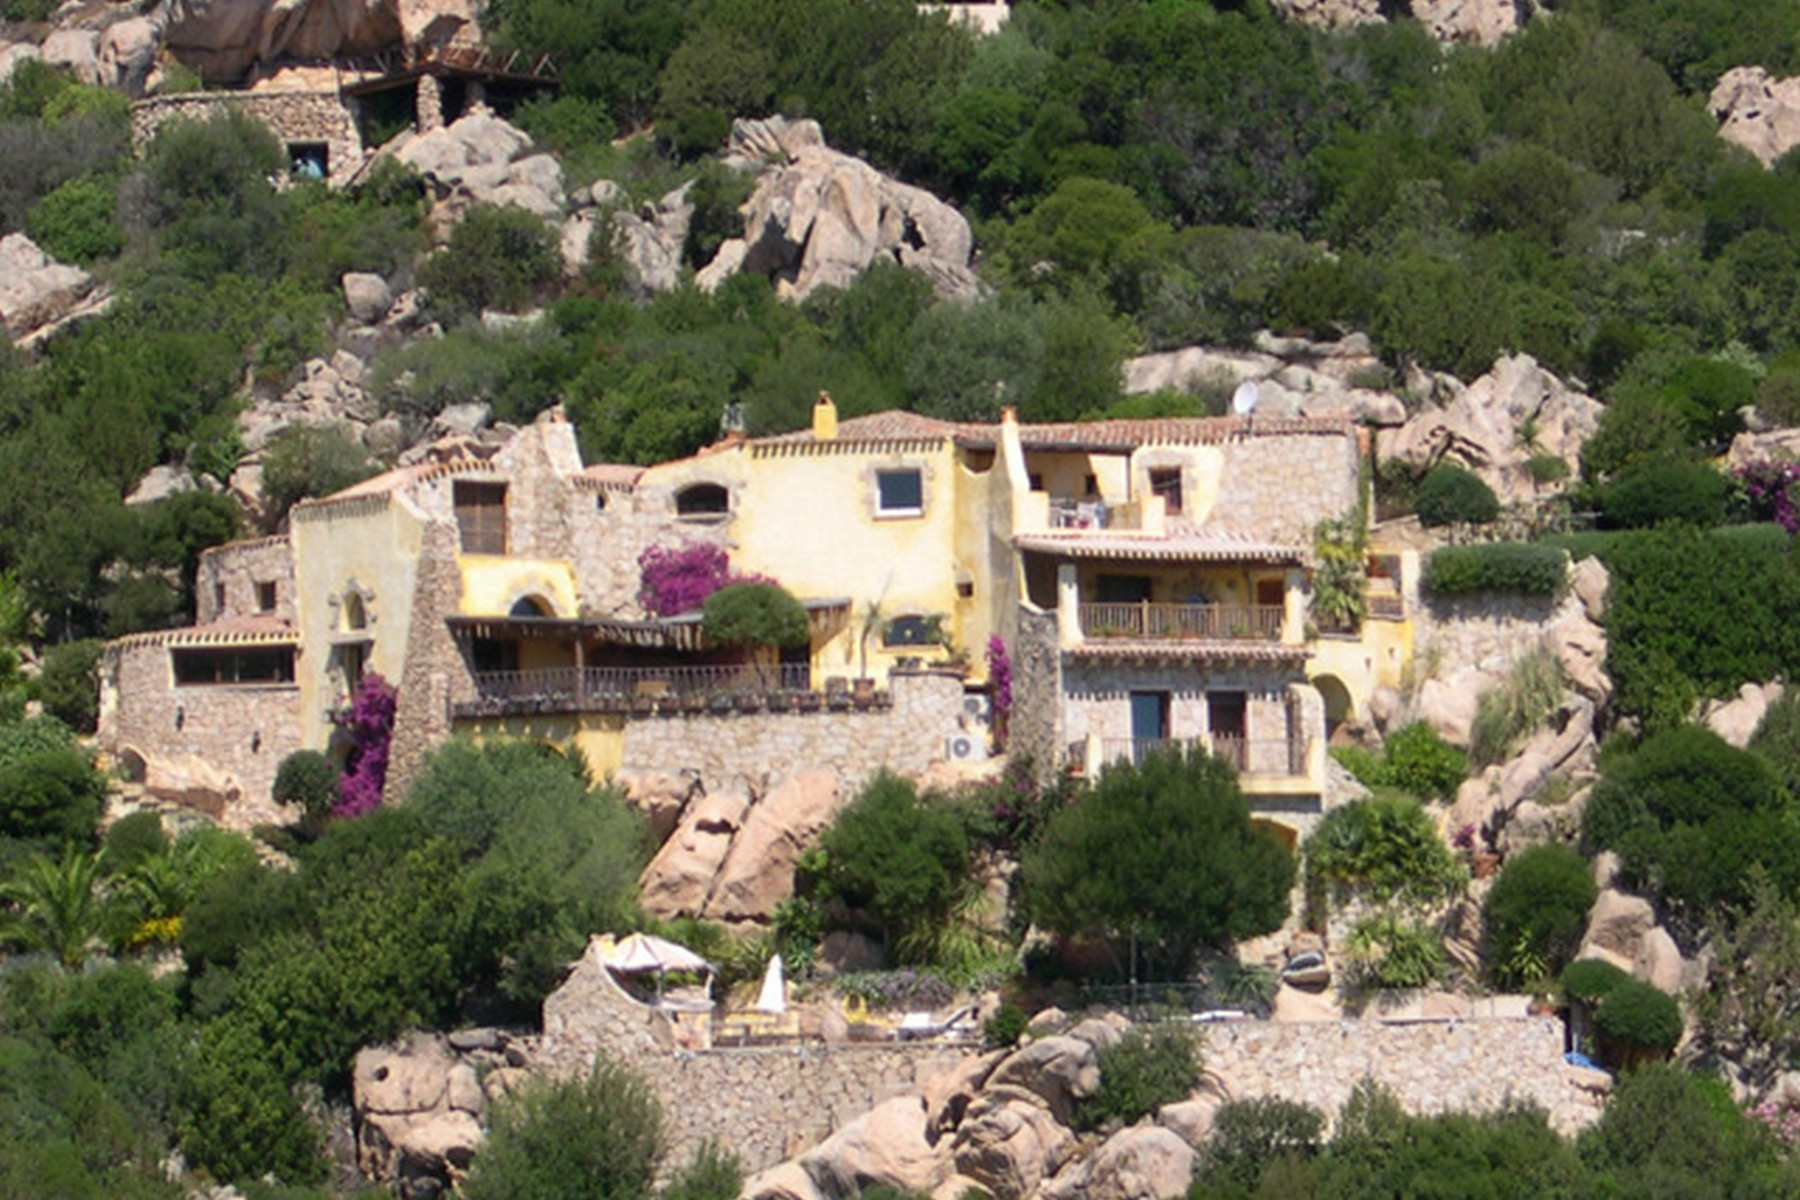 Other Residential for Sale at Beautiful Villa on the Pantogia Hill Porto Cervo, Olbia Tempio, Italy